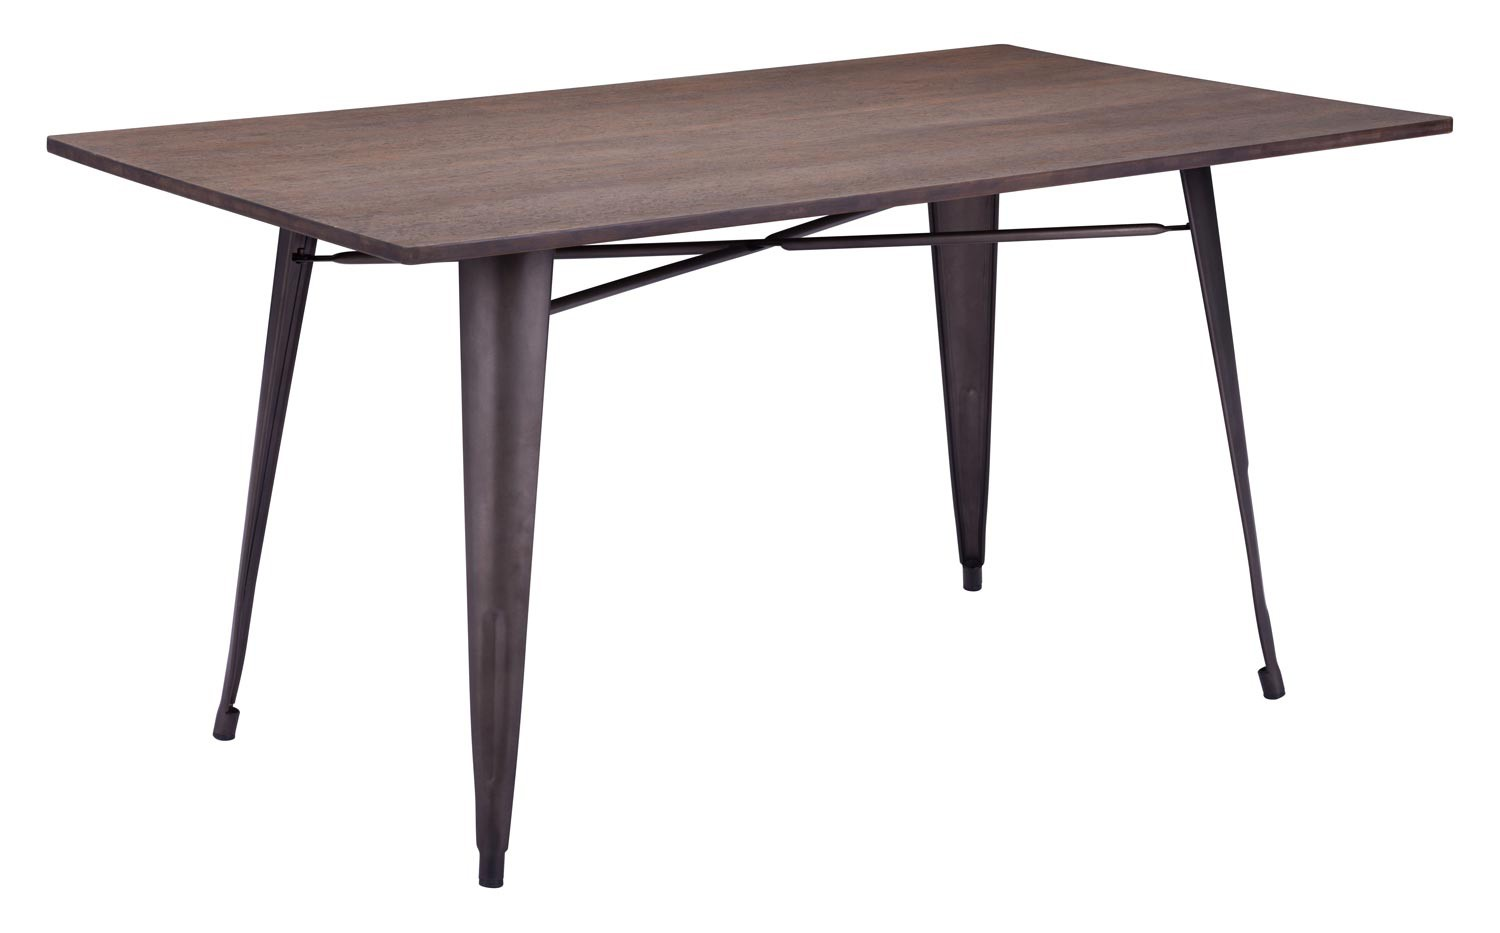 Zuo Modern Titus Rectangular Dining Table Rustic Wood ZM  : ZM 109127 from www.homelement.com size 1500 x 933 jpeg 62kB